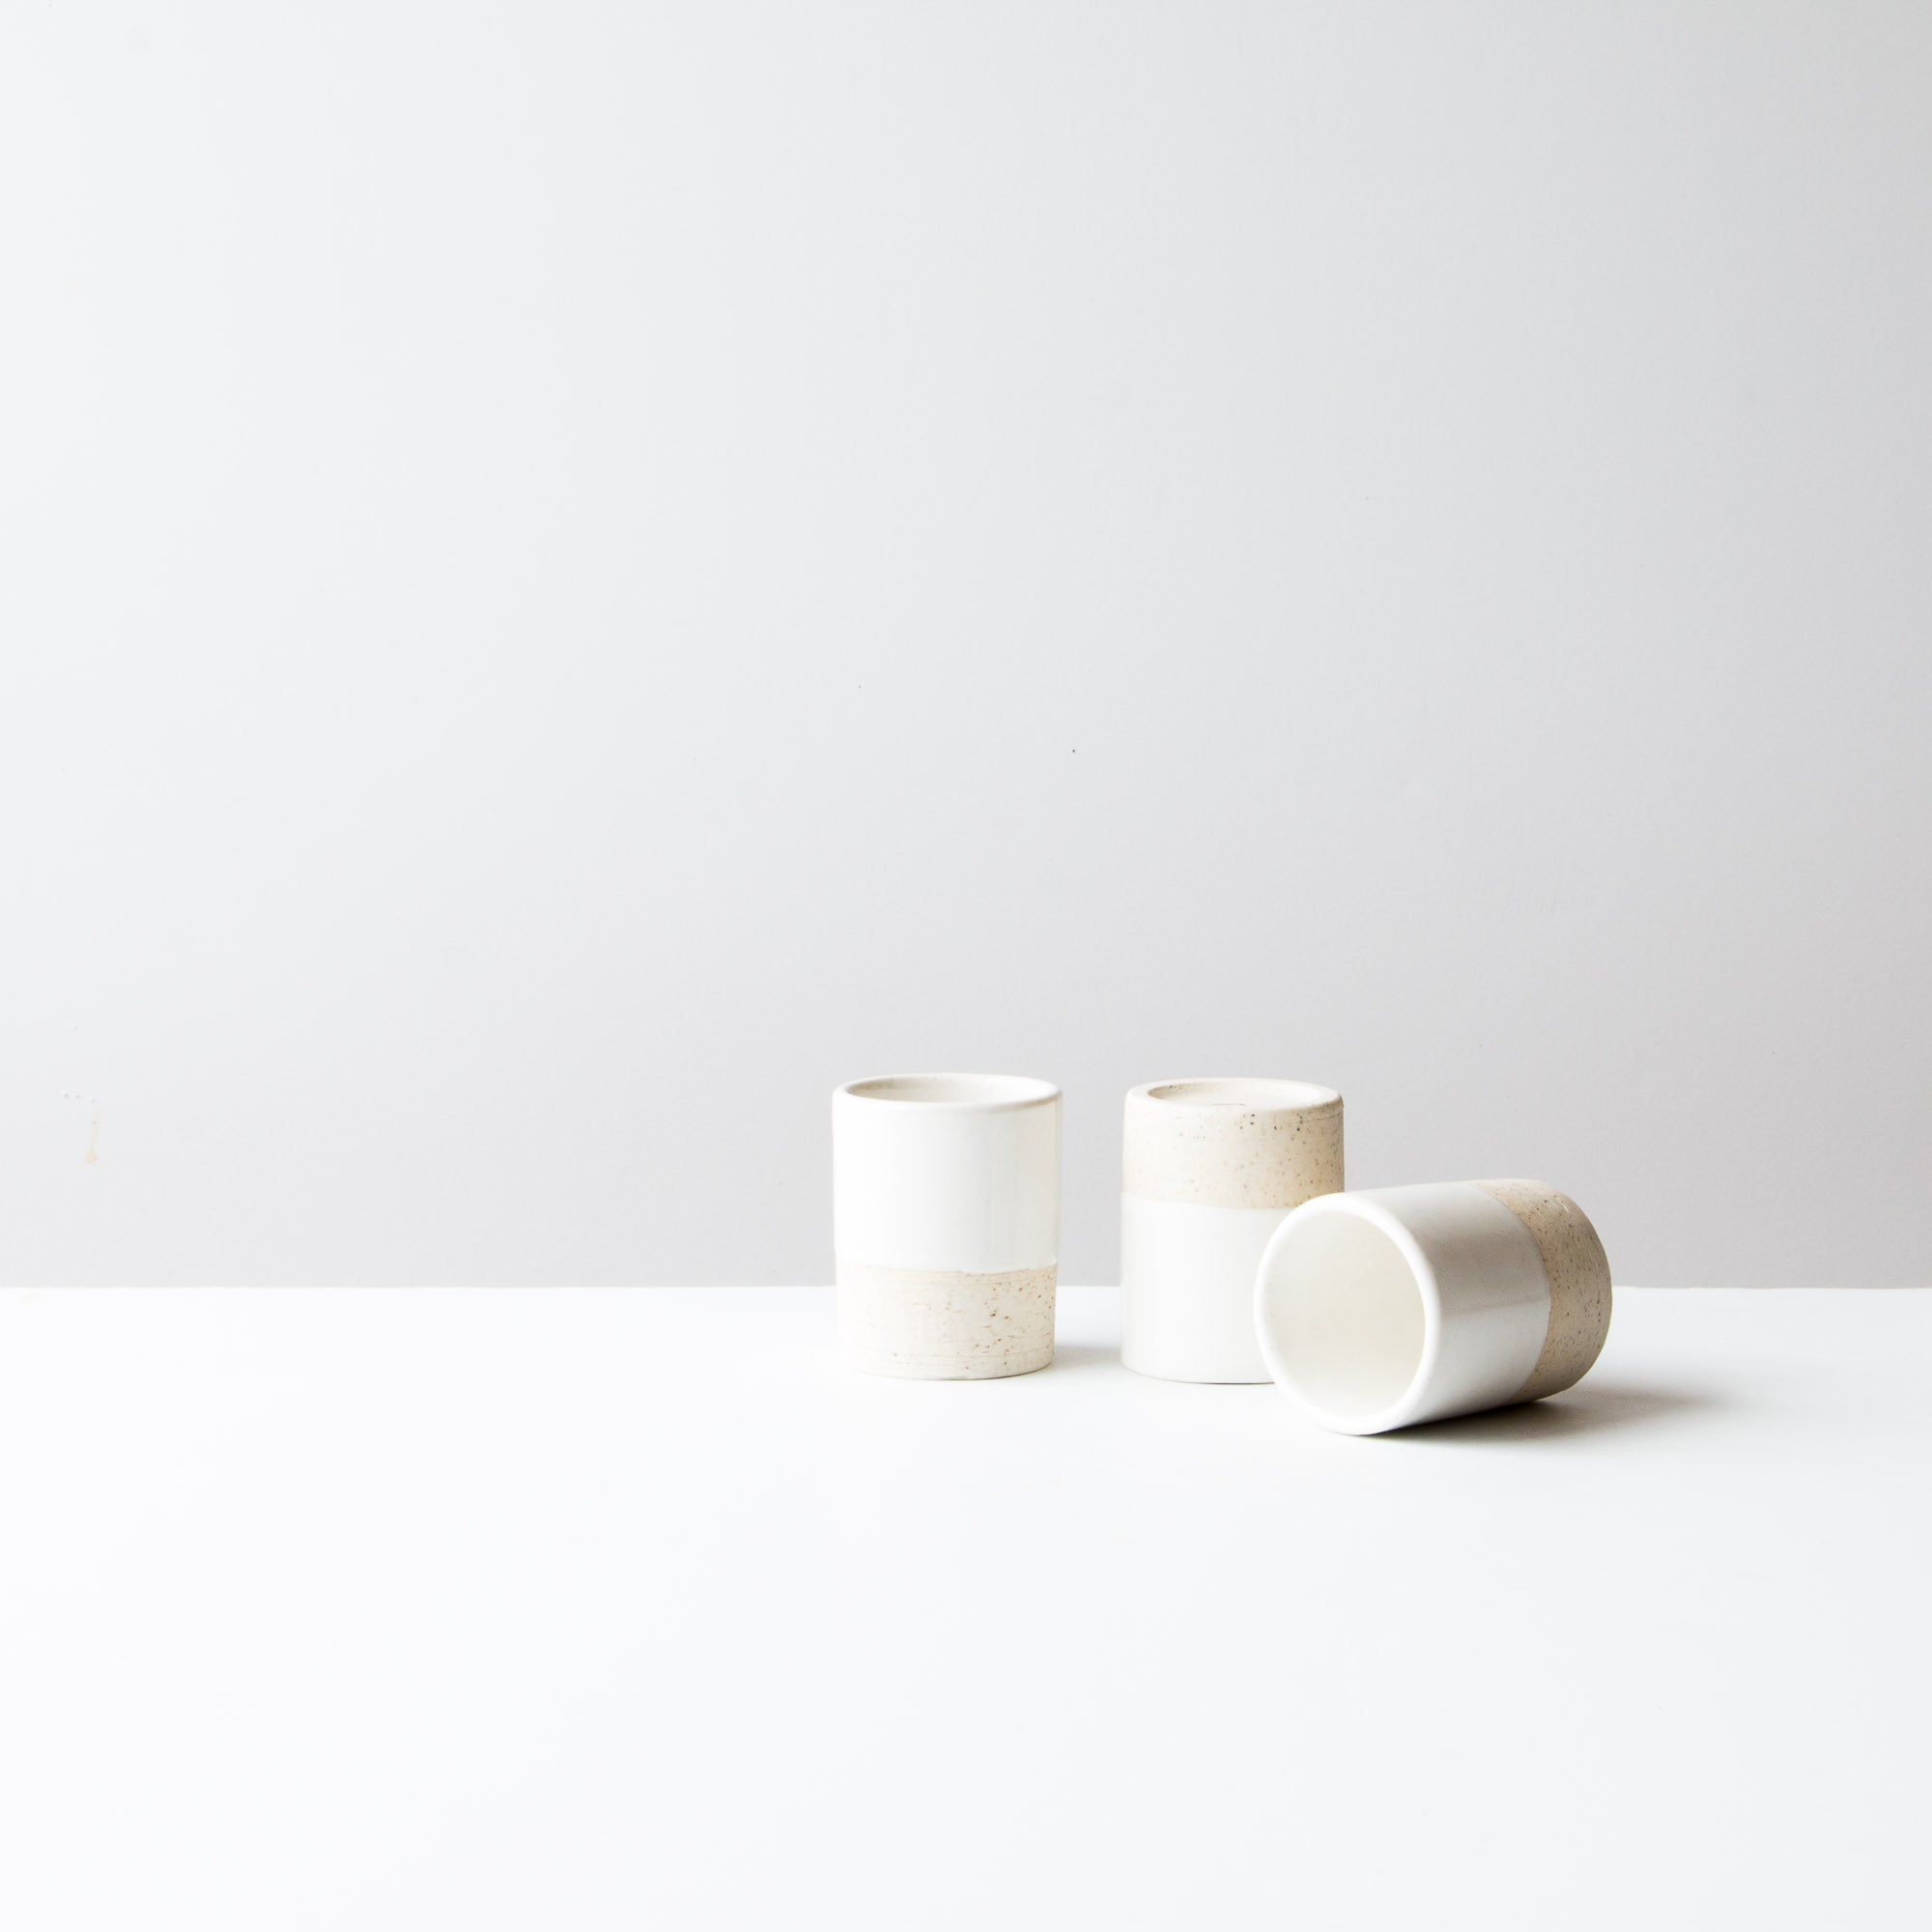 Three Handmade Ceramic Mini Tumblers / Espresso Cups - Sold by Chic & Basta